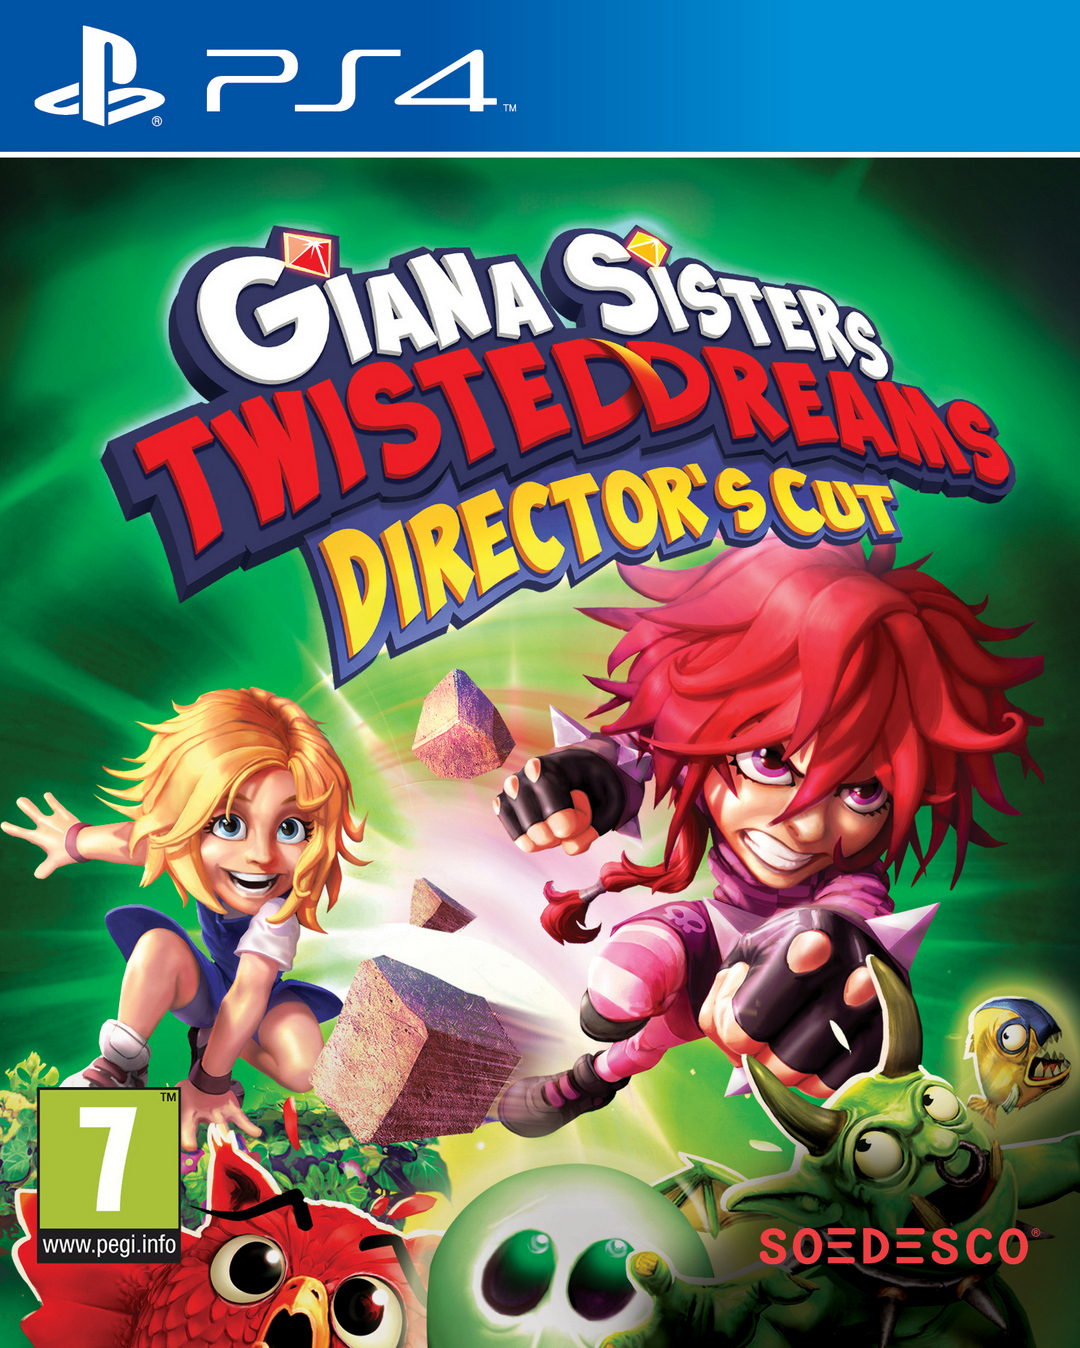 Giana Sisters:Twisted Dreams